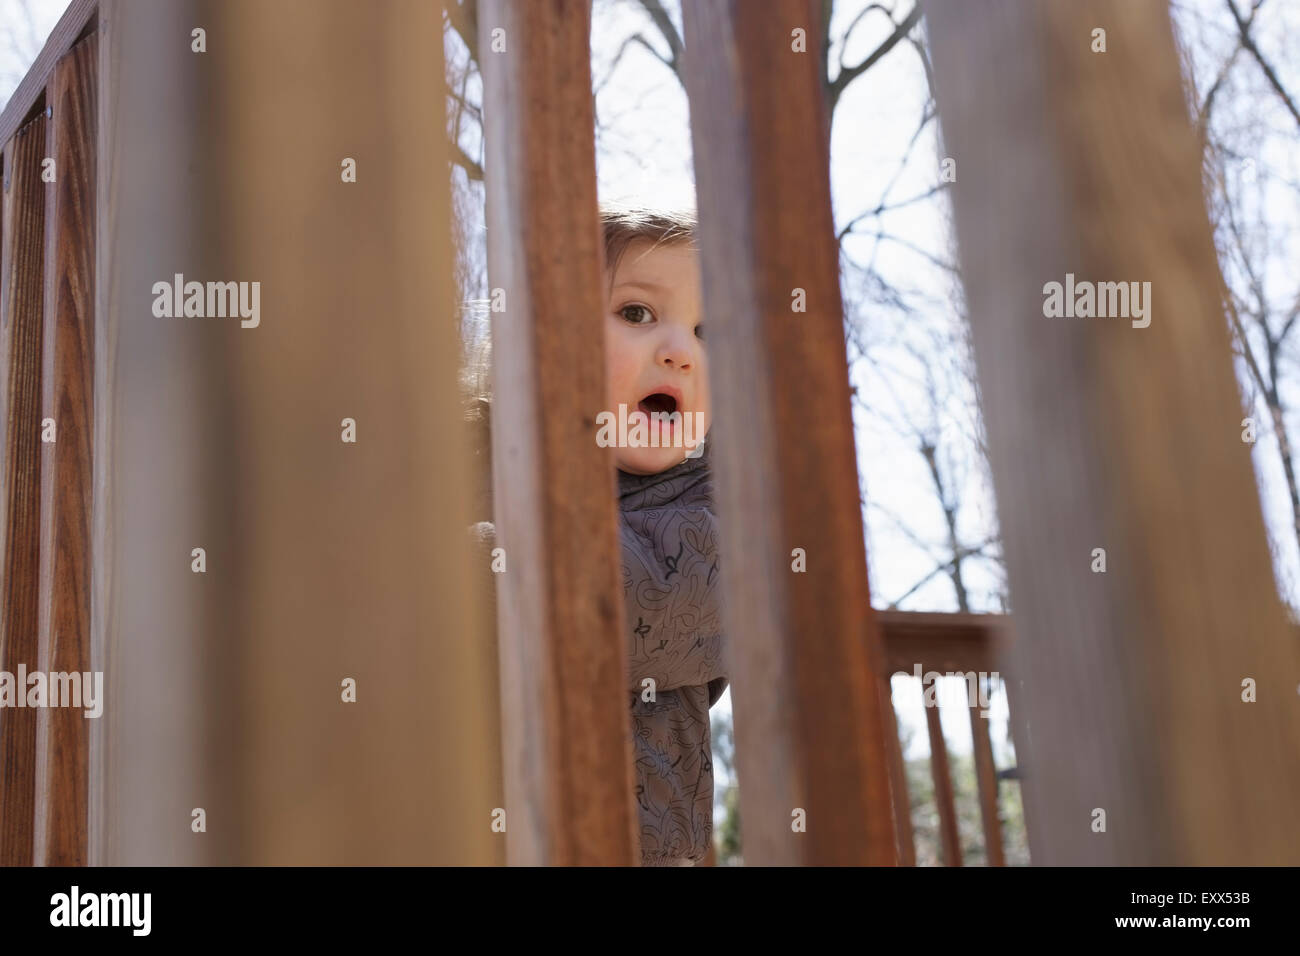 Portrait of girl hiding behind fence - Stock Image